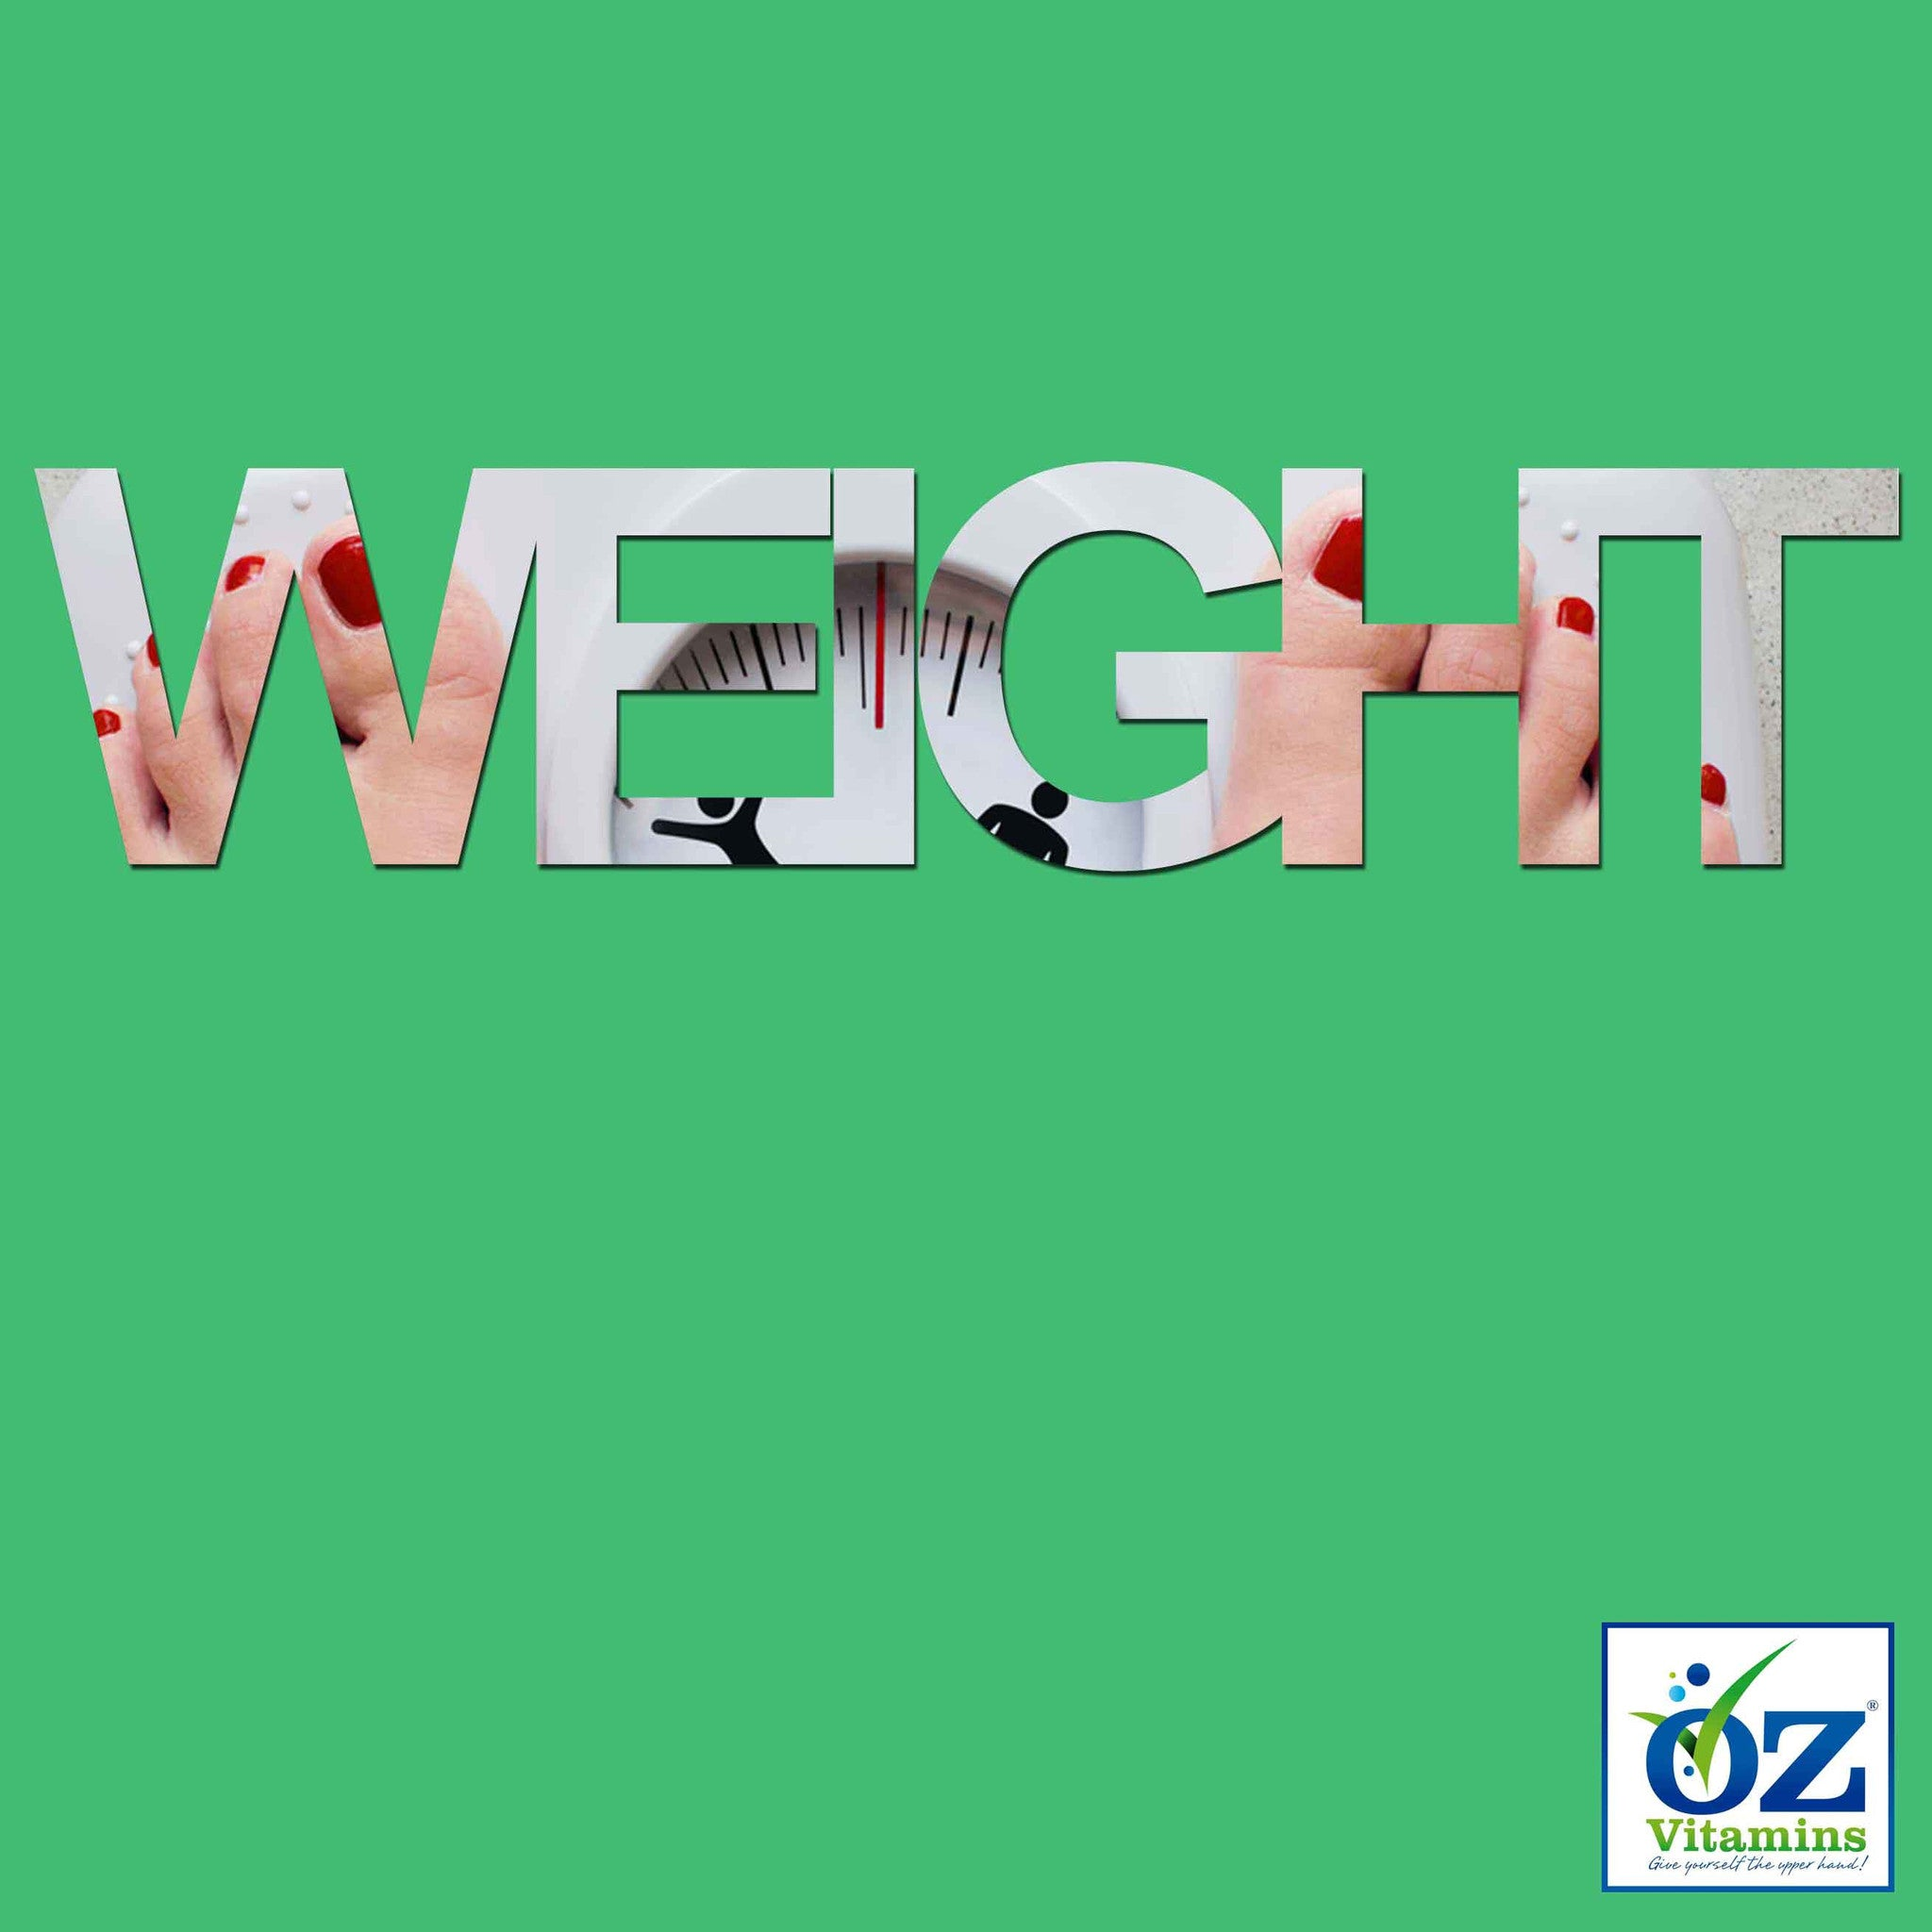 Oz Vitamins Better Weight is a unique vitamin dietary supplement designed to support your healthy weight goals. Available exclusively online, it packs a whopping combination of African Mango (Irvingia gabonensis) 300mg, Caralluma Fimbriata 1000mg, Chitosan 4000mg, Chromium 500mcg, Garcinia Cambogia (60% HCA) 3000mg, Green Coffee (50% Chlorogenic acid) 1200mg, Green Tea (50% Polyphenol) 800mg, Gymnema Sylvestre (50% Gymnemic acid) 800mg and Raspberry Ketone 200mg into a total daily dose in a convenient one m